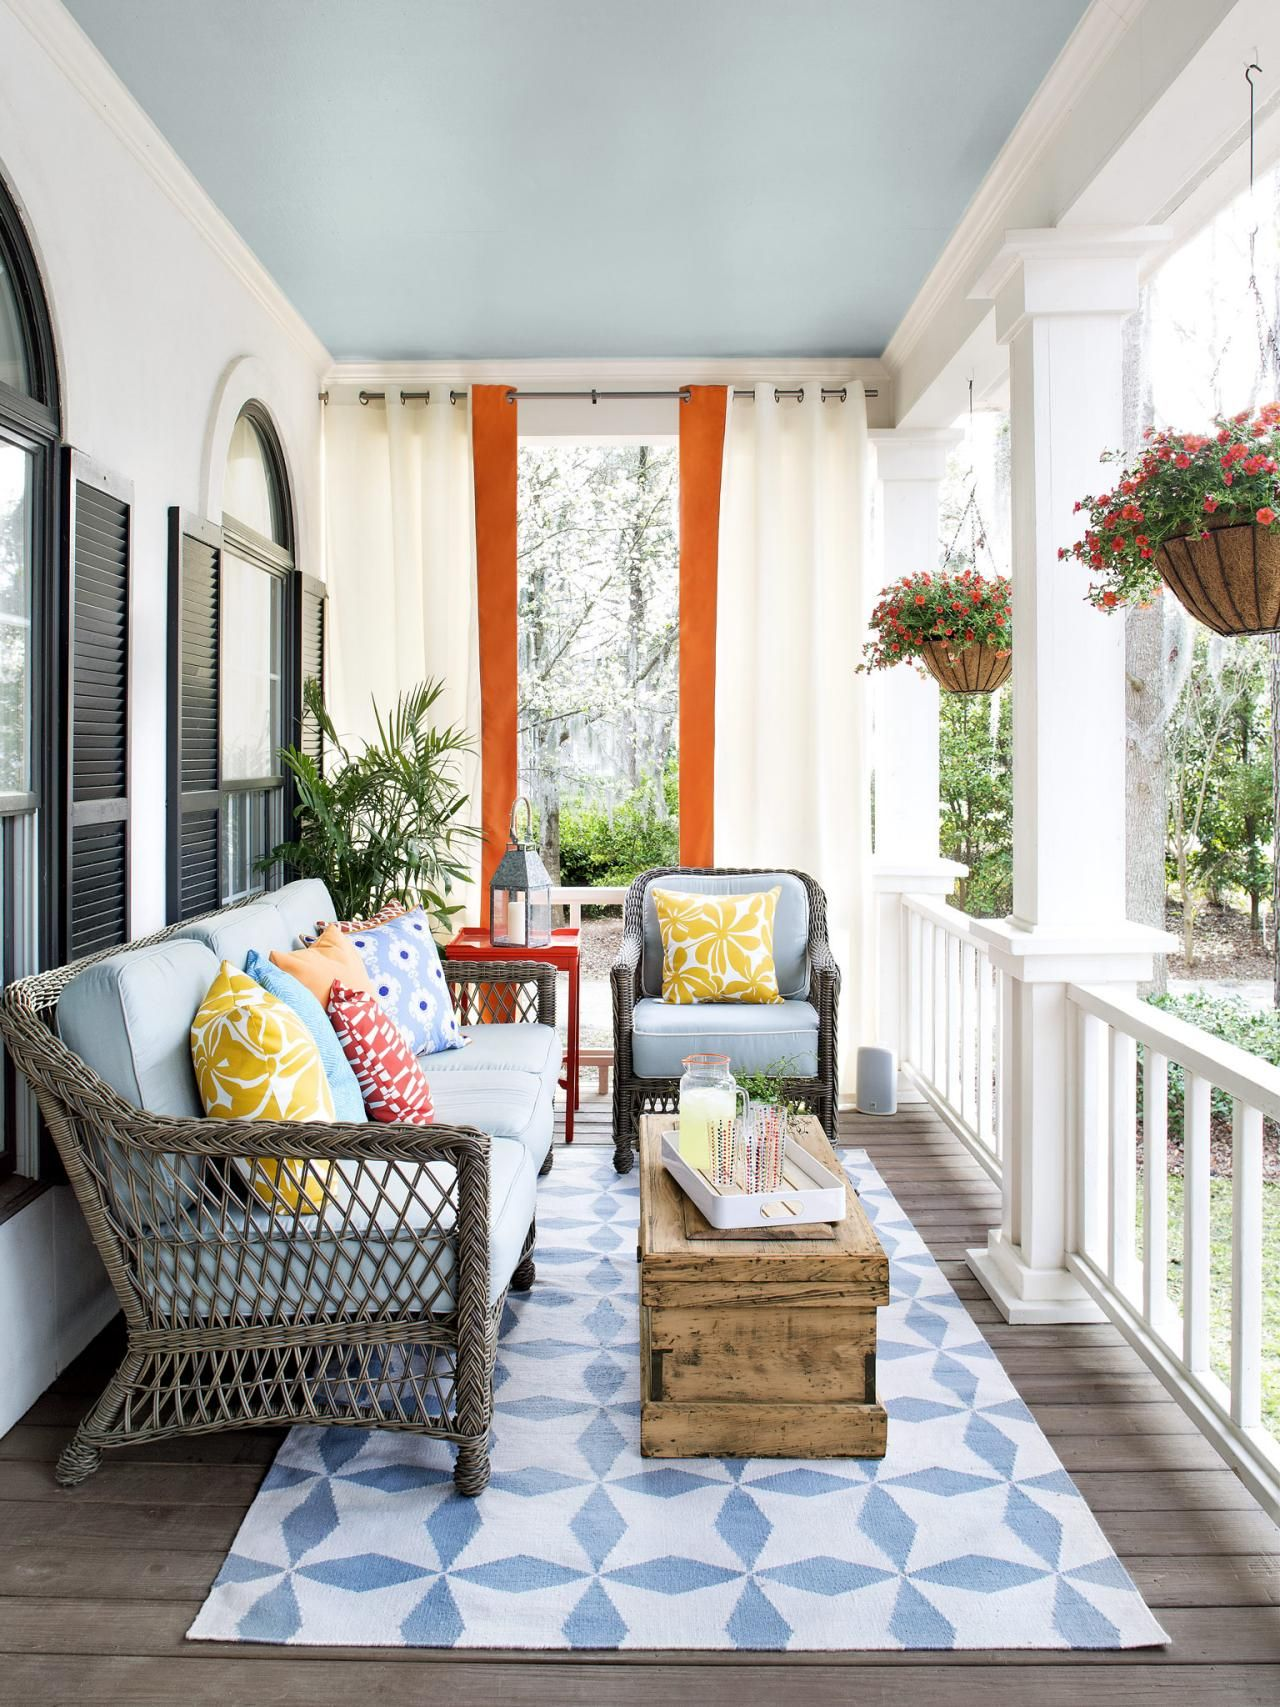 Outdoor curtains for porch and patio designs 22 summer decorating - Porch Design And Decorating Ideas Outdoor Curtainsoutdoor